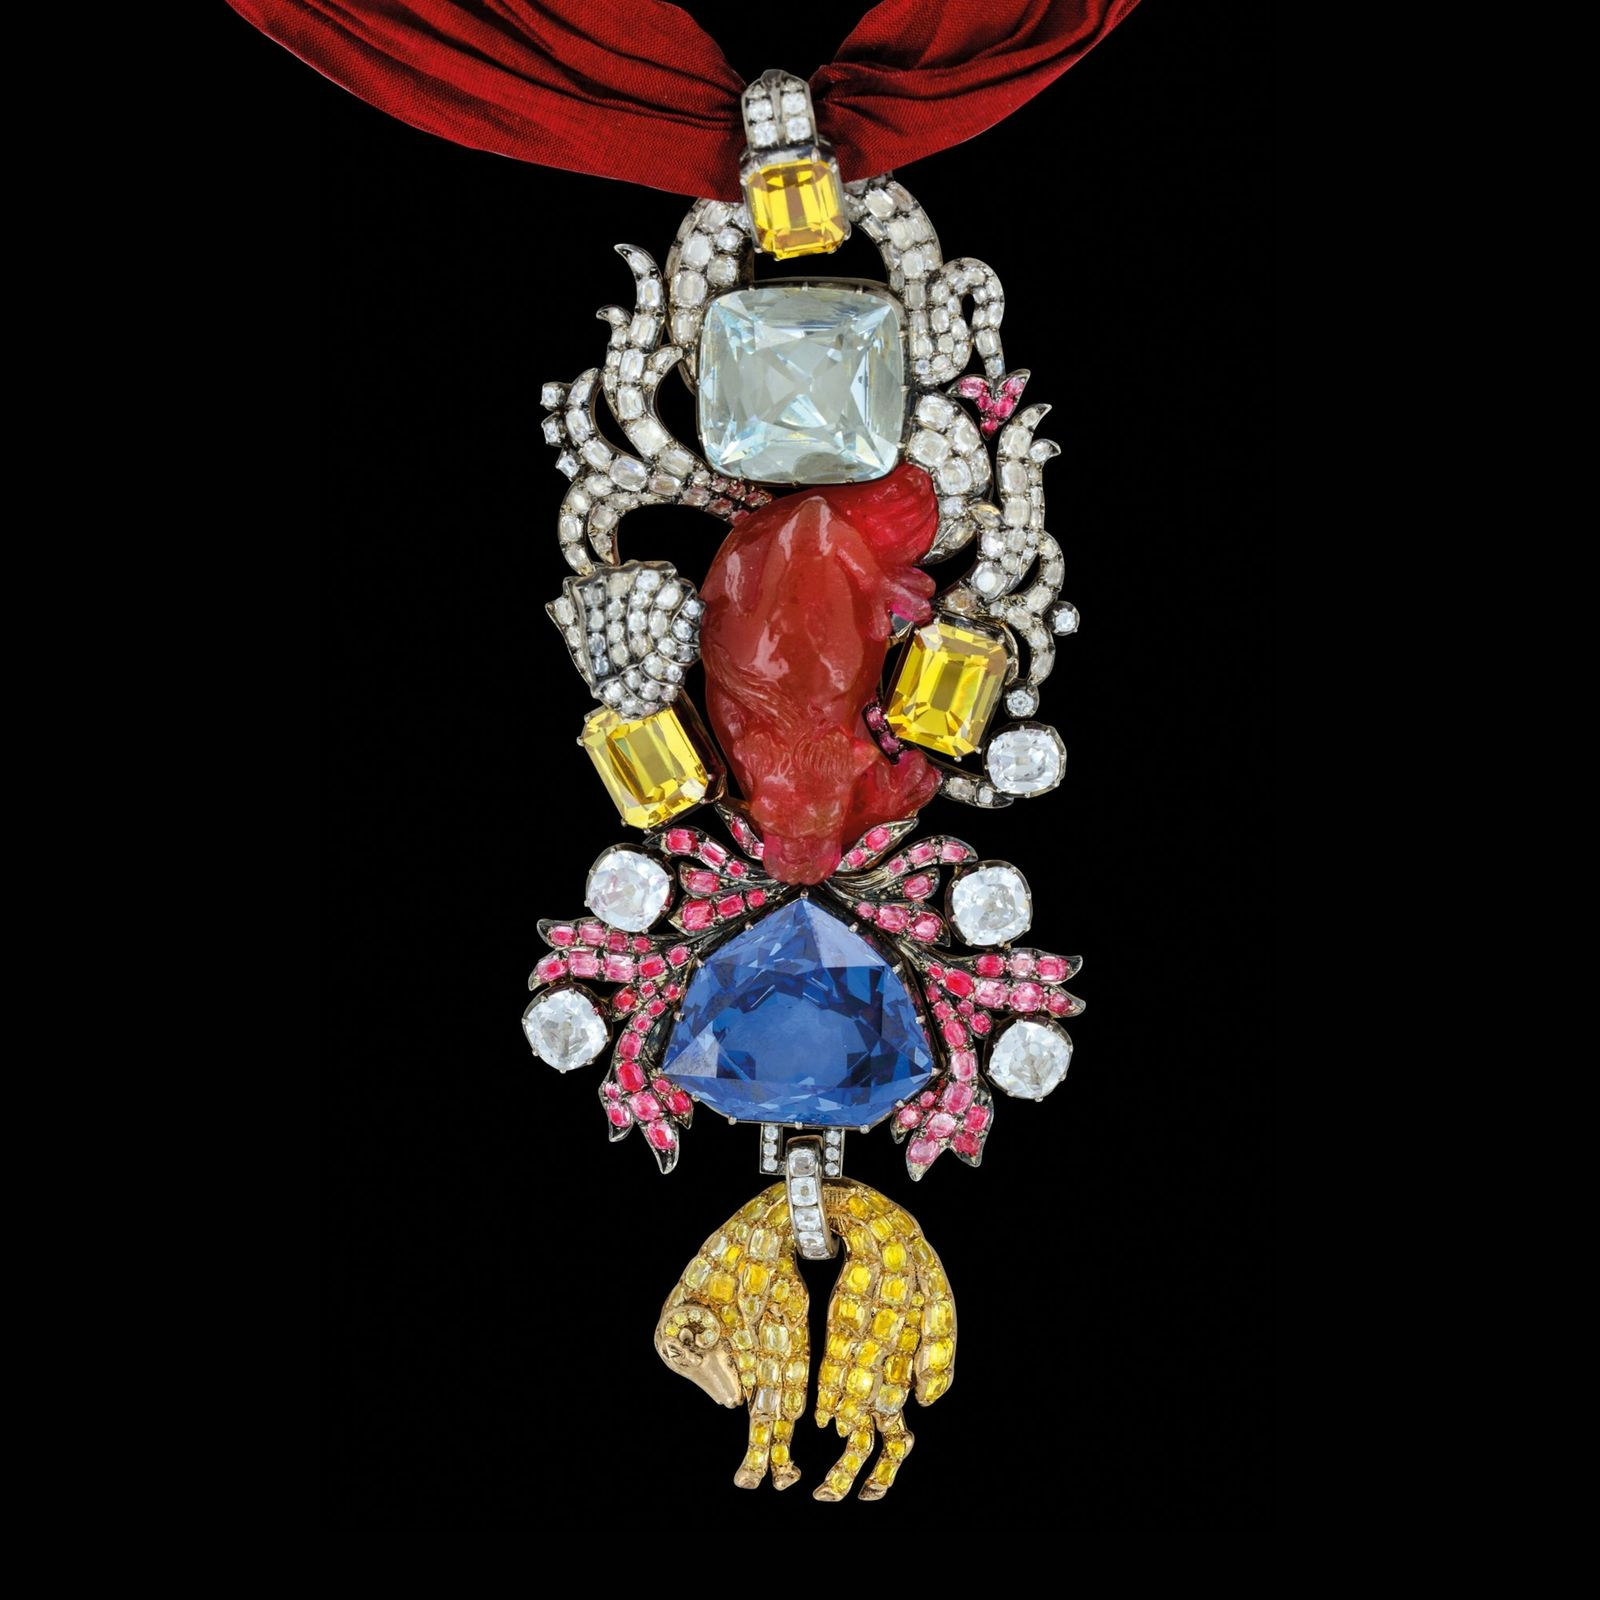 Louis XV's Order of the Golden Fleece was one of the most lavish pieces of jewellery ...